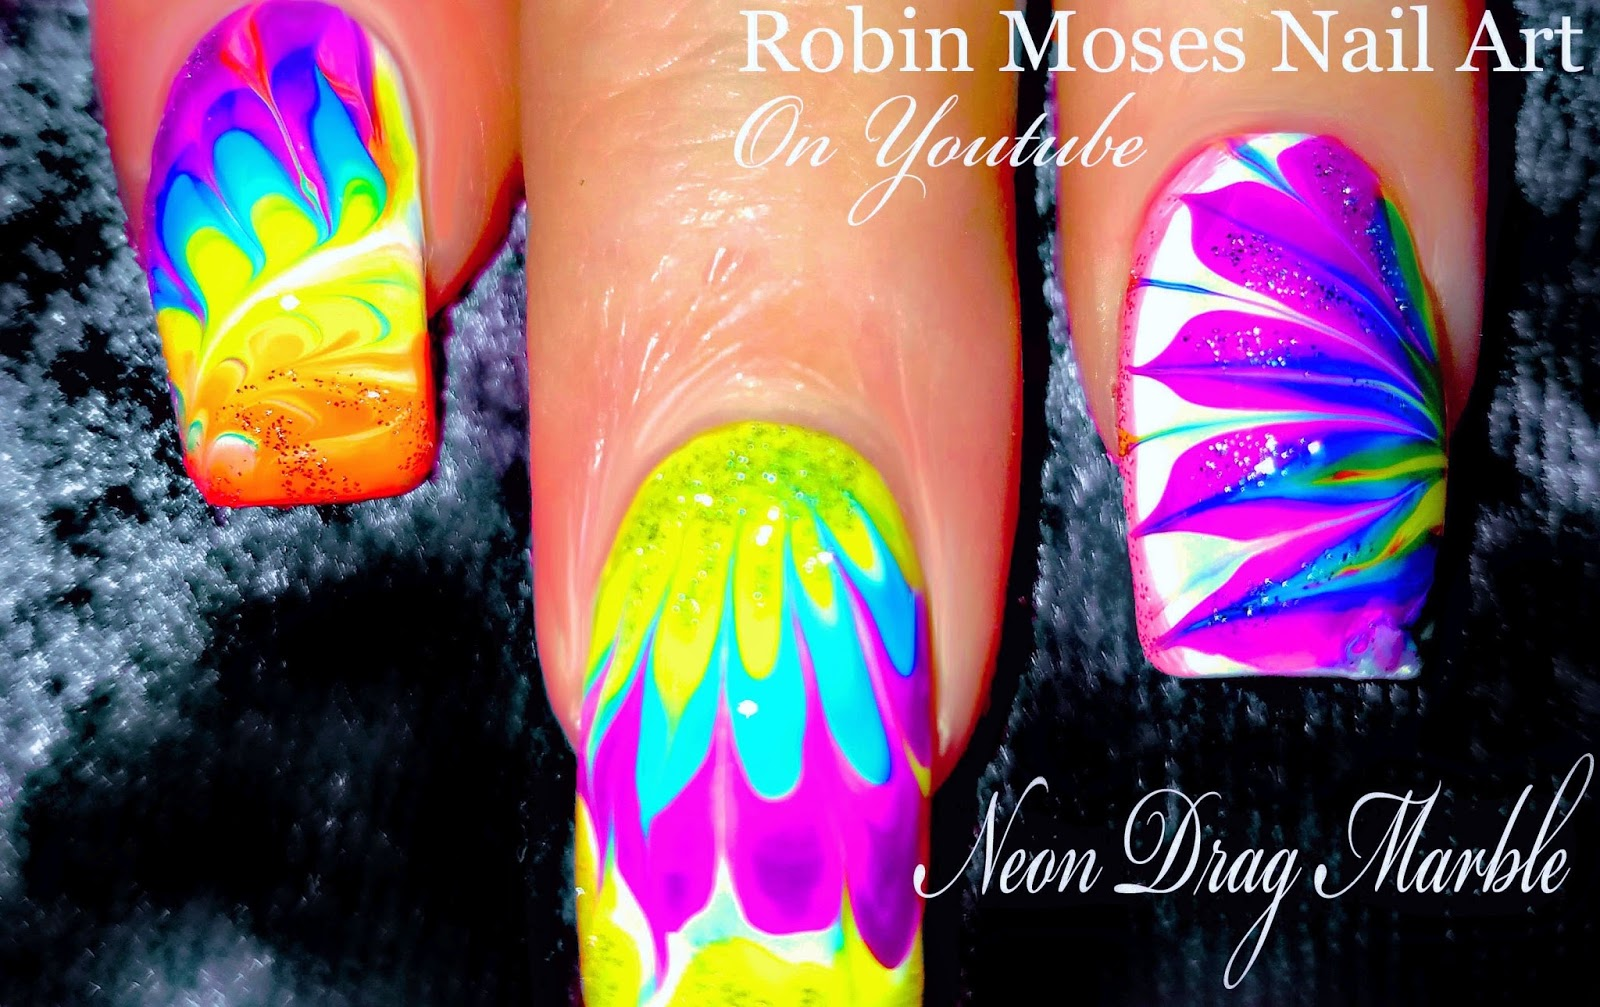 Nail Art by Robin Moses: Essie Neons will Glow your mind! No Water ...